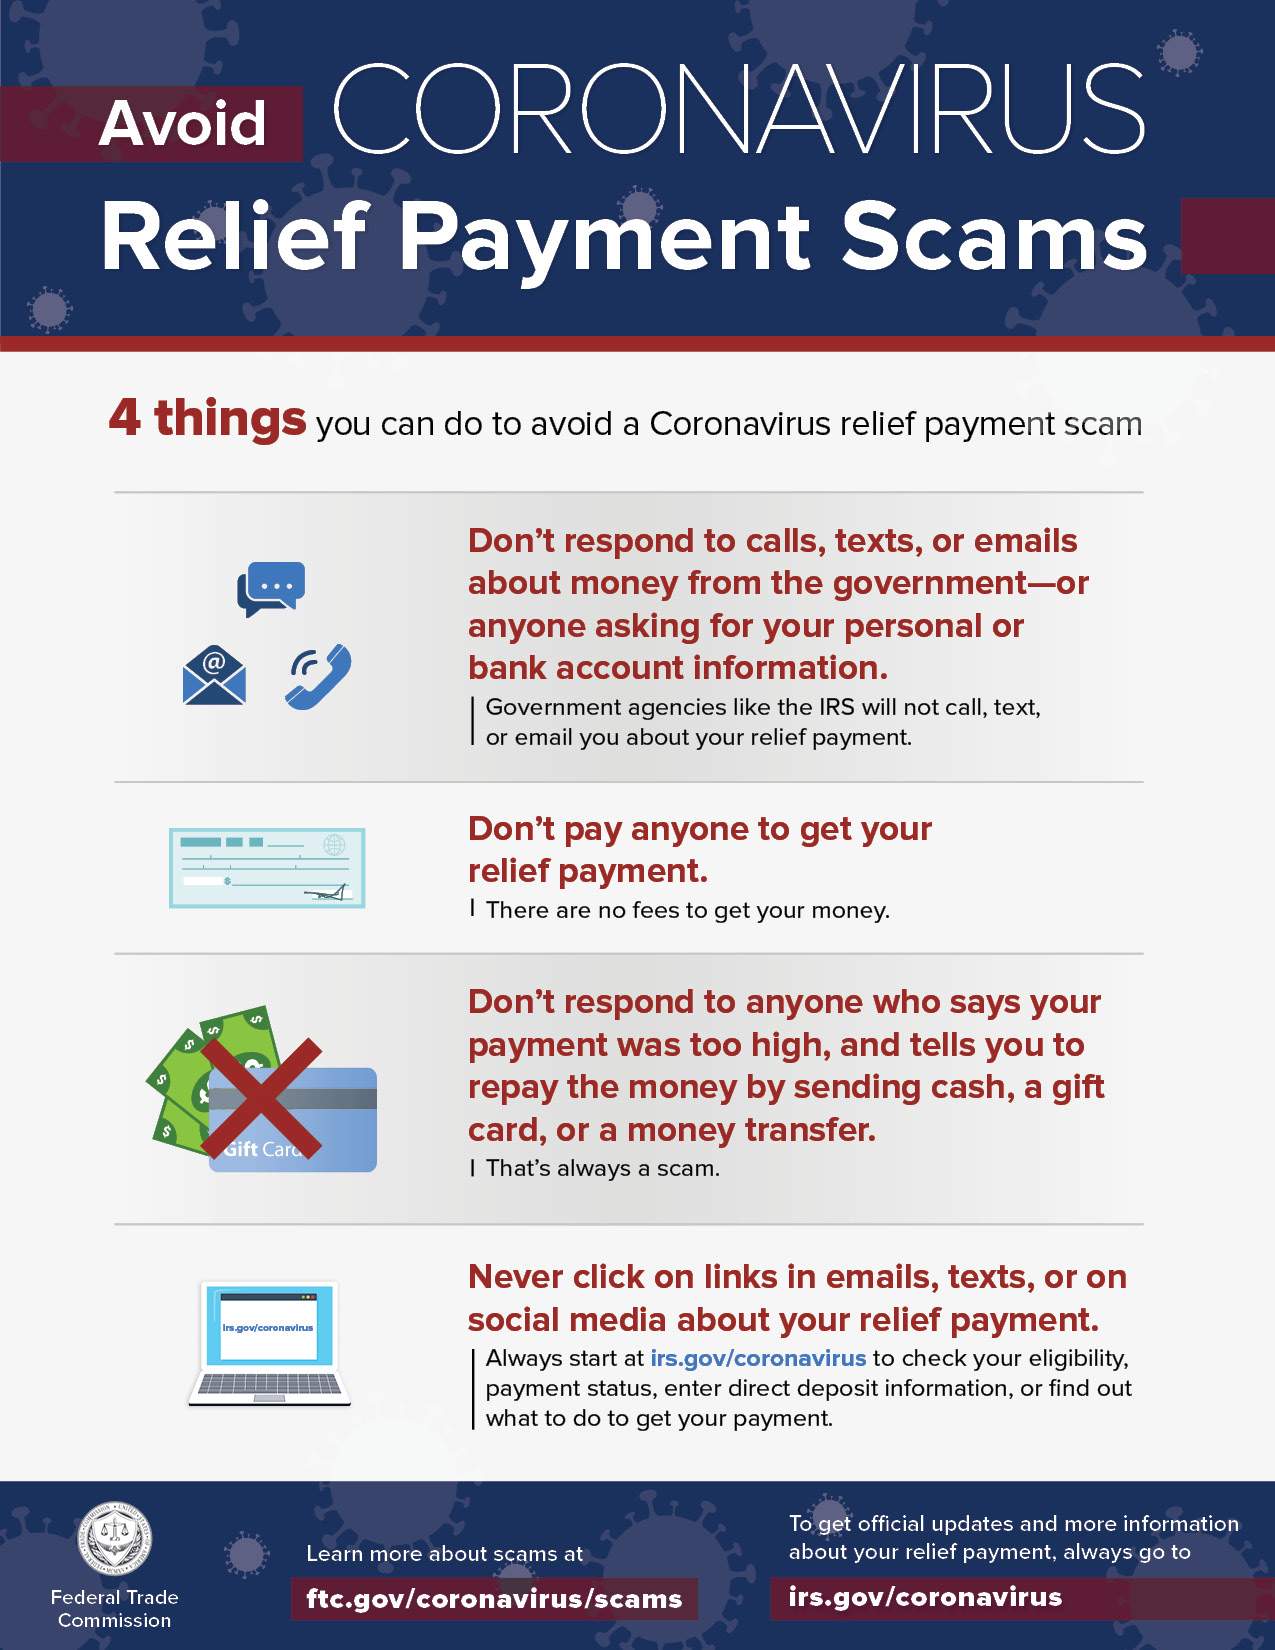 Avoid Coronavirus Relief Payment Scams